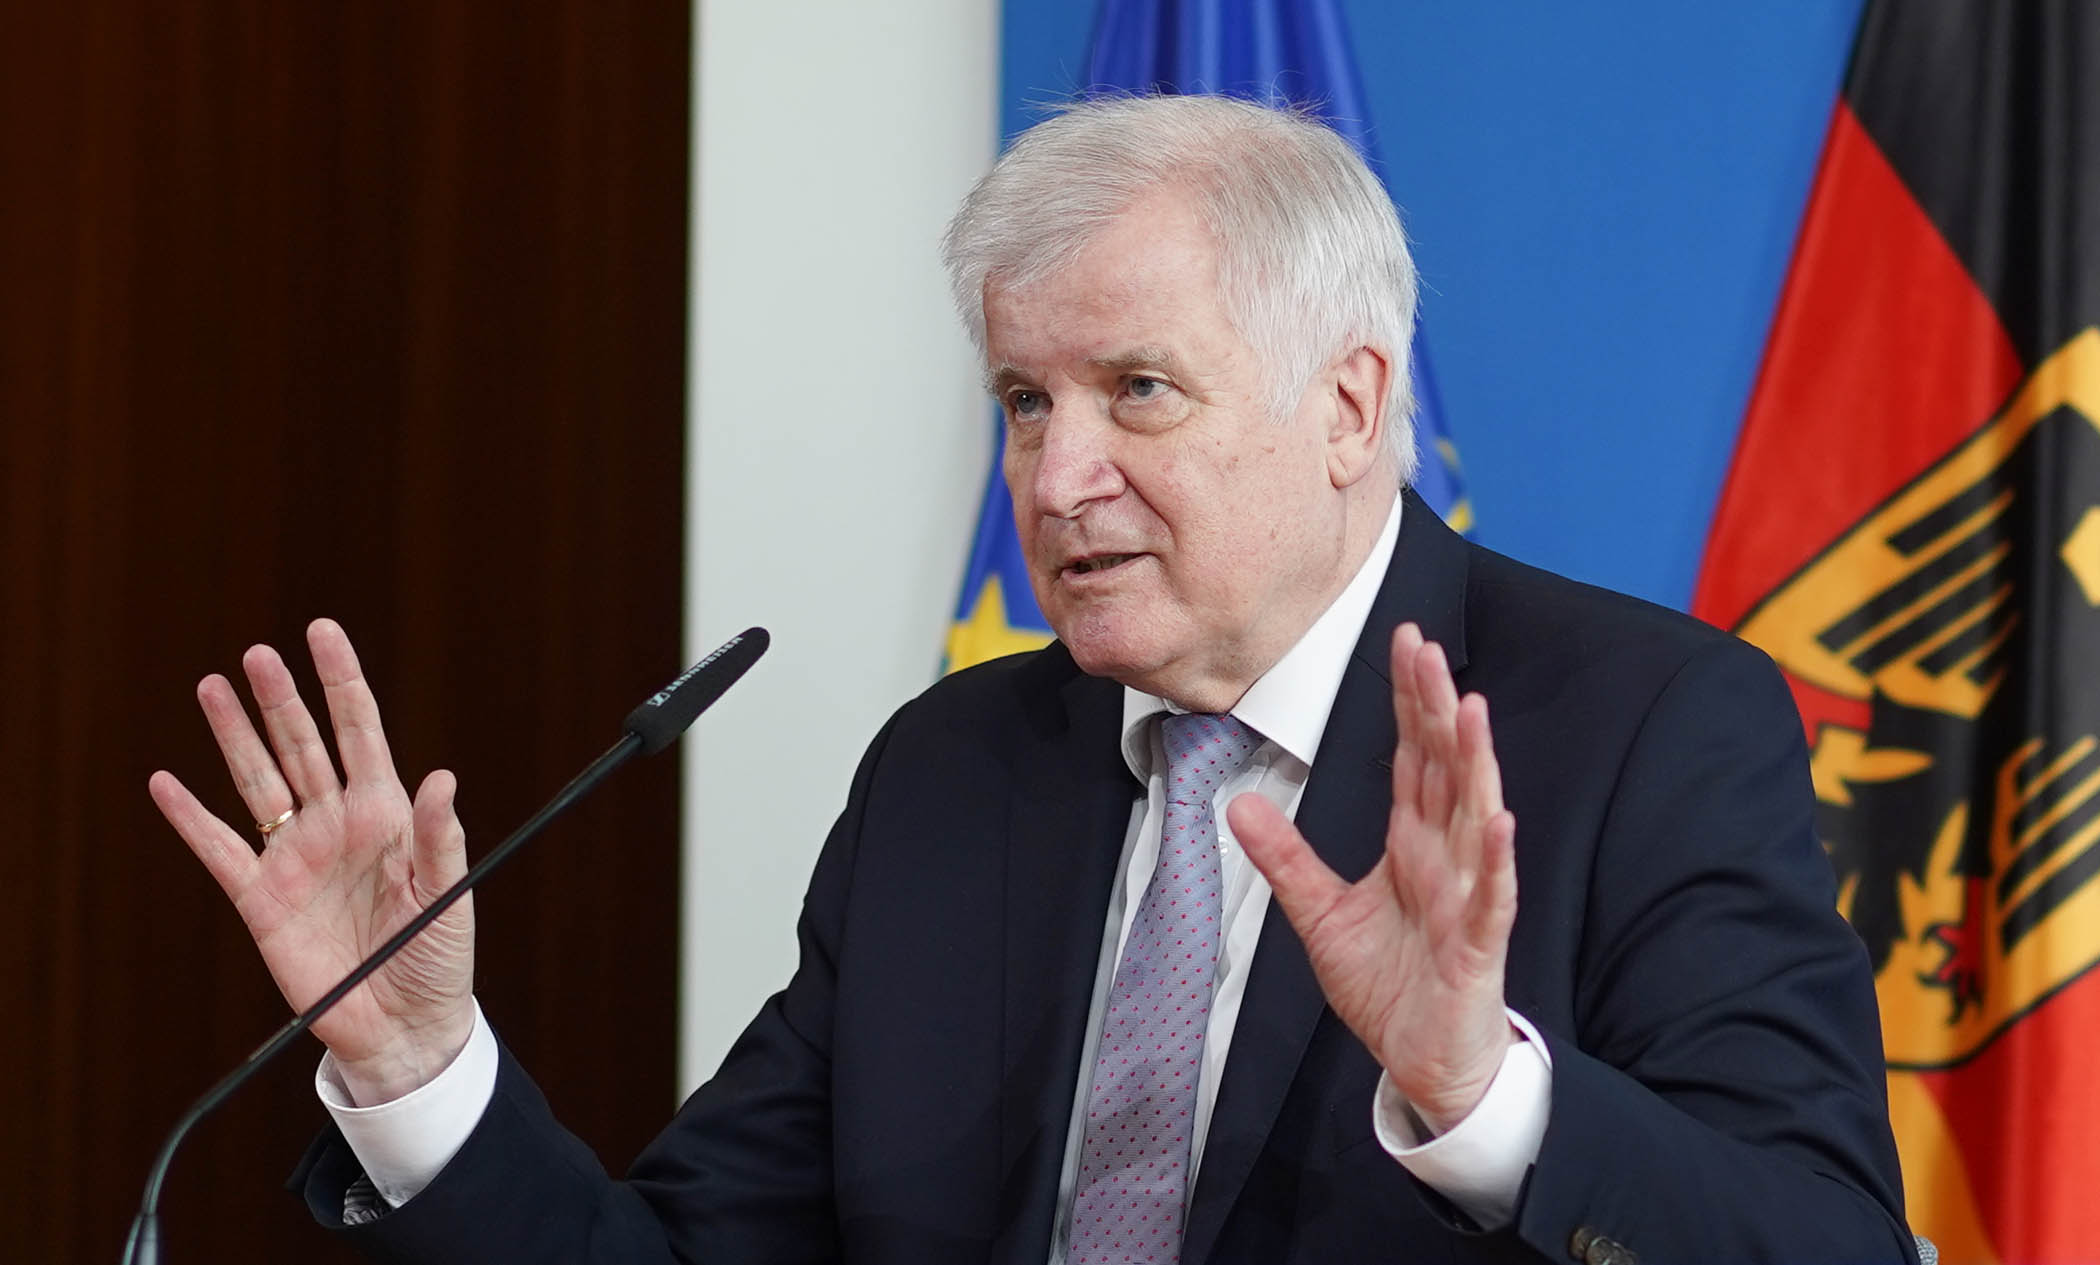 German Interior Minister Horst Seehofer speaks at a conference about the planned dismantling of Germany's border controls, in Berlin, on Wednesday, June 10.